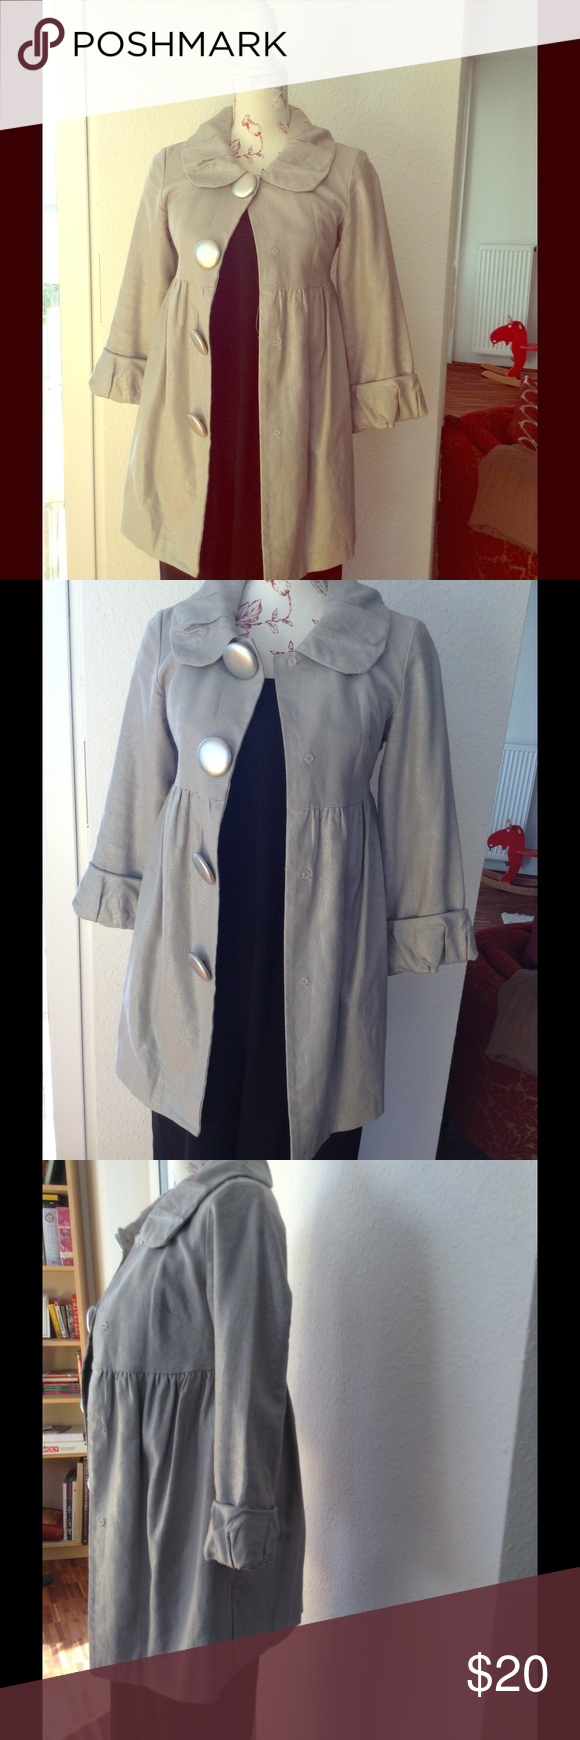 Kensie Jacket This is a Kensie light weight jacket. Empire waist with big pleated collar and pleated detail on the sleeve. Kensie Jackets & Coats Blazers